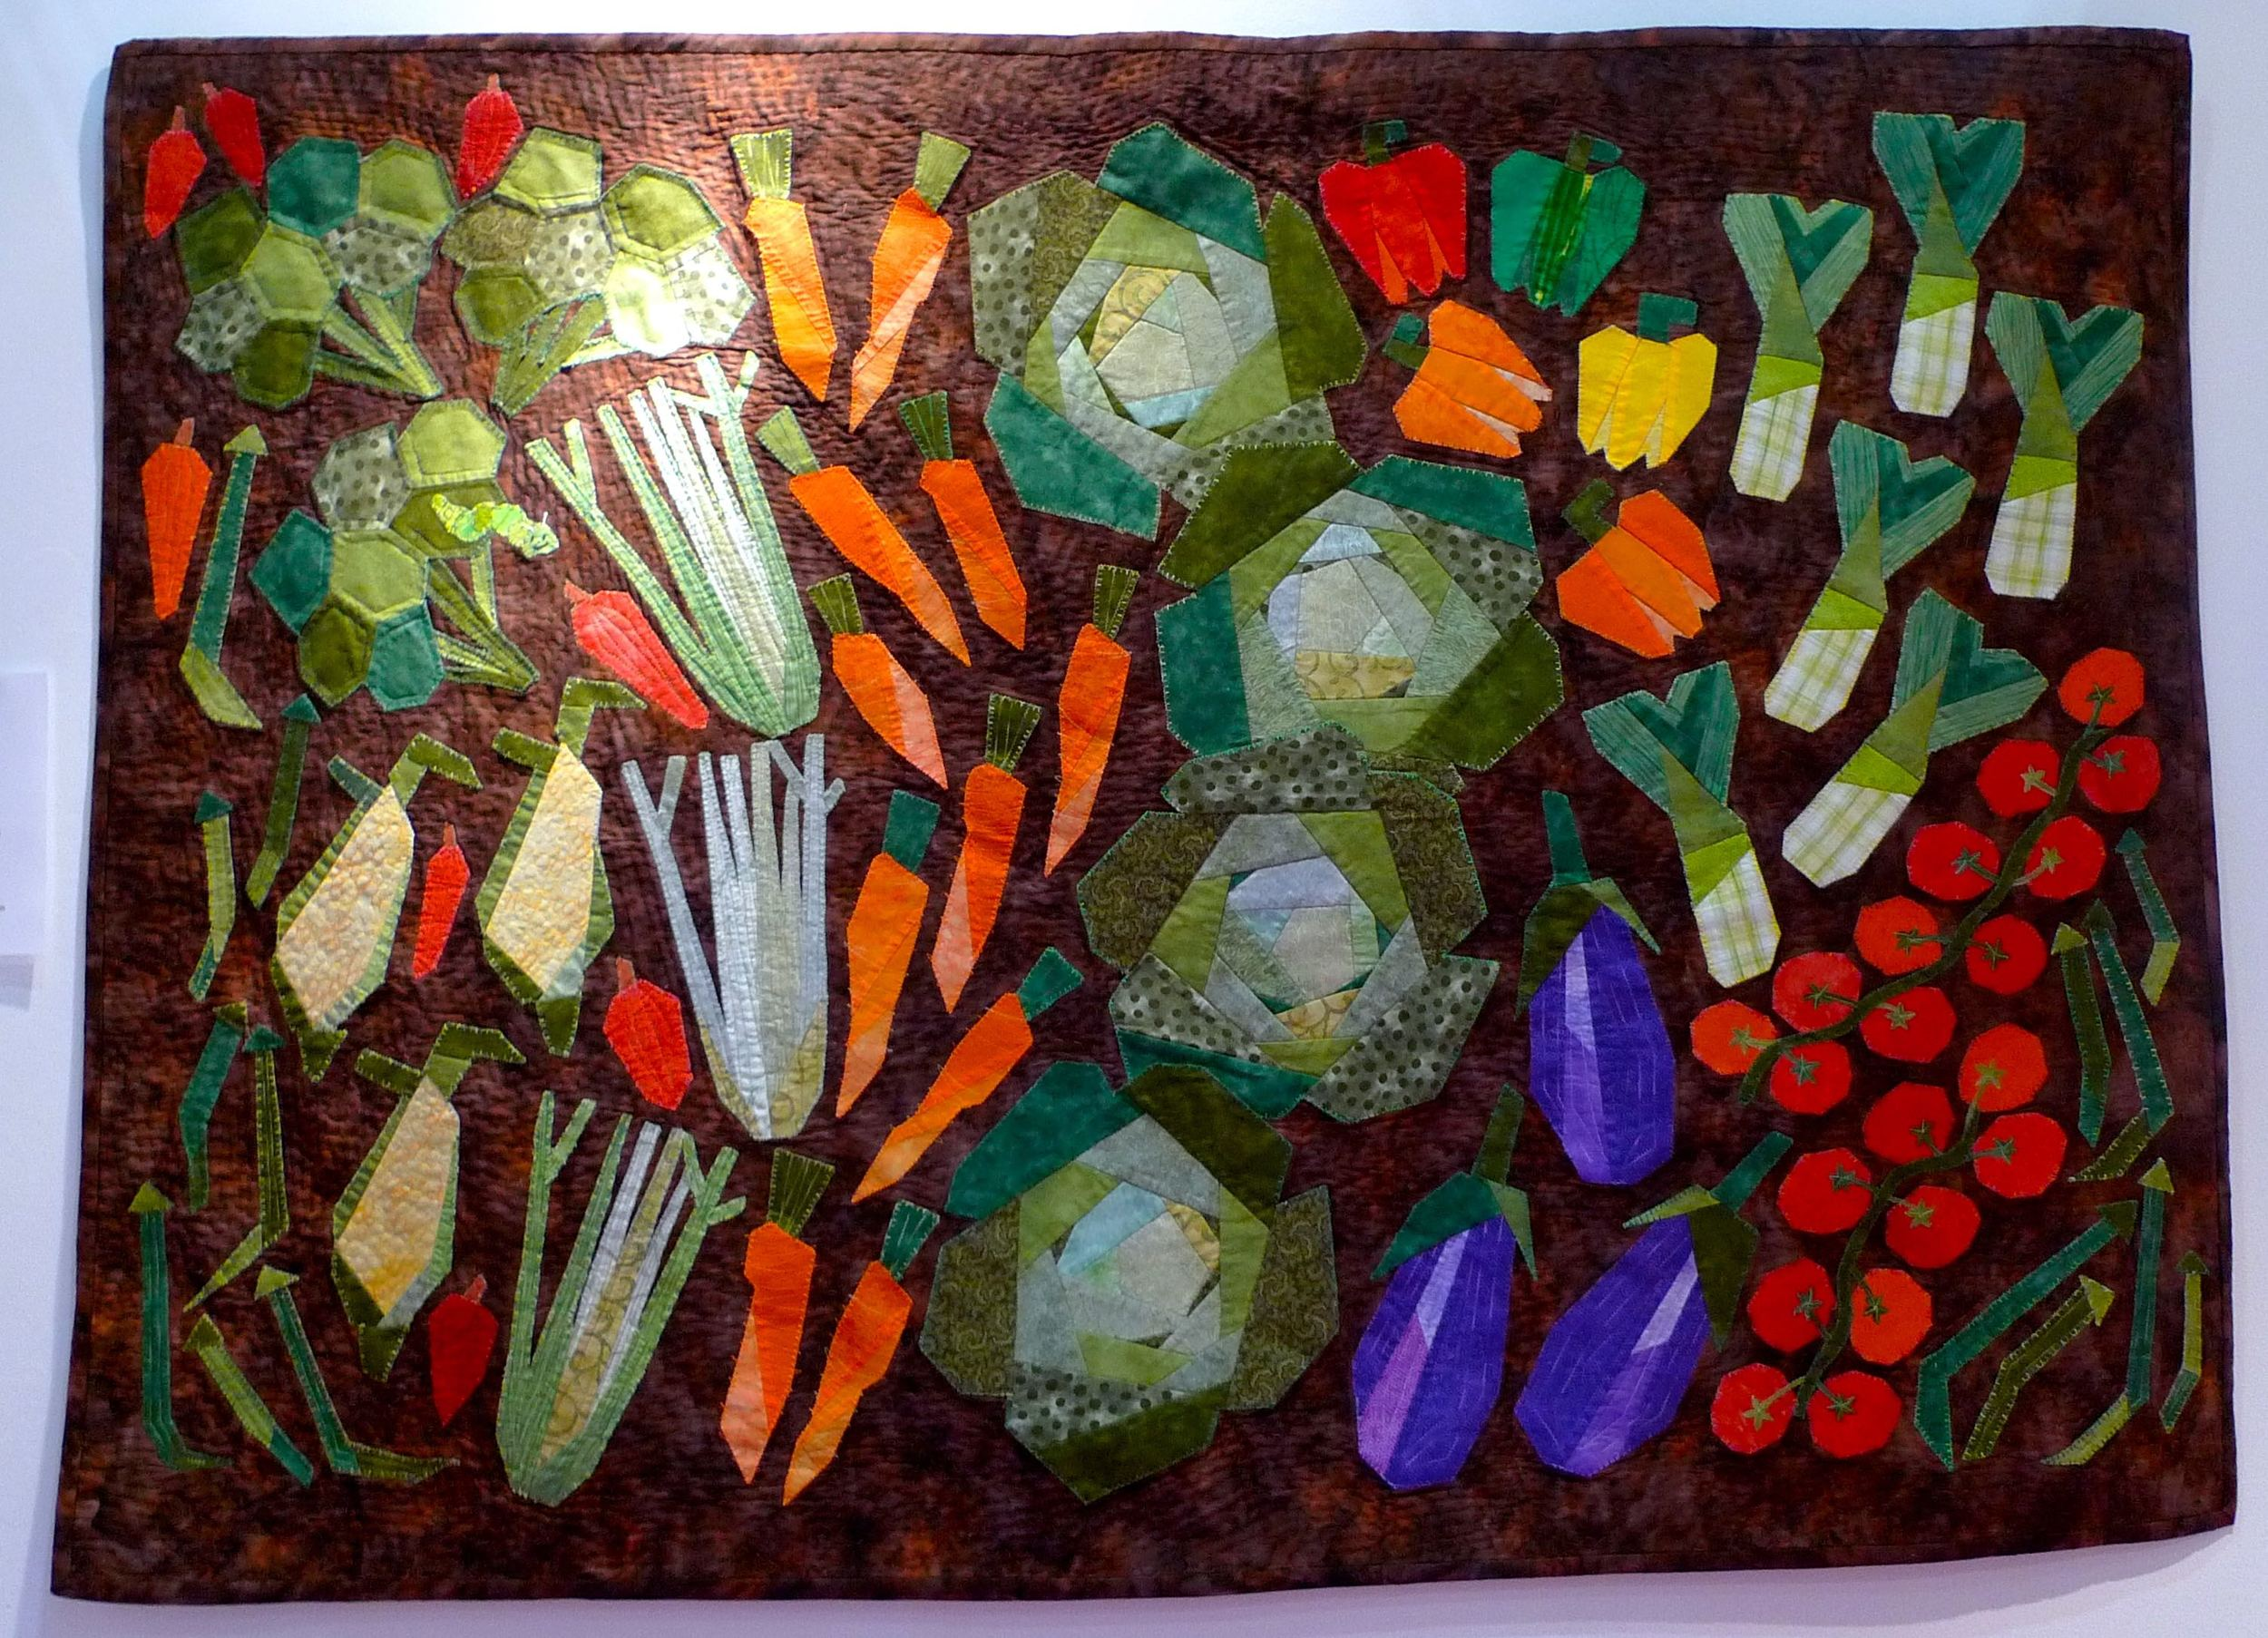 A quilted vegetable plot